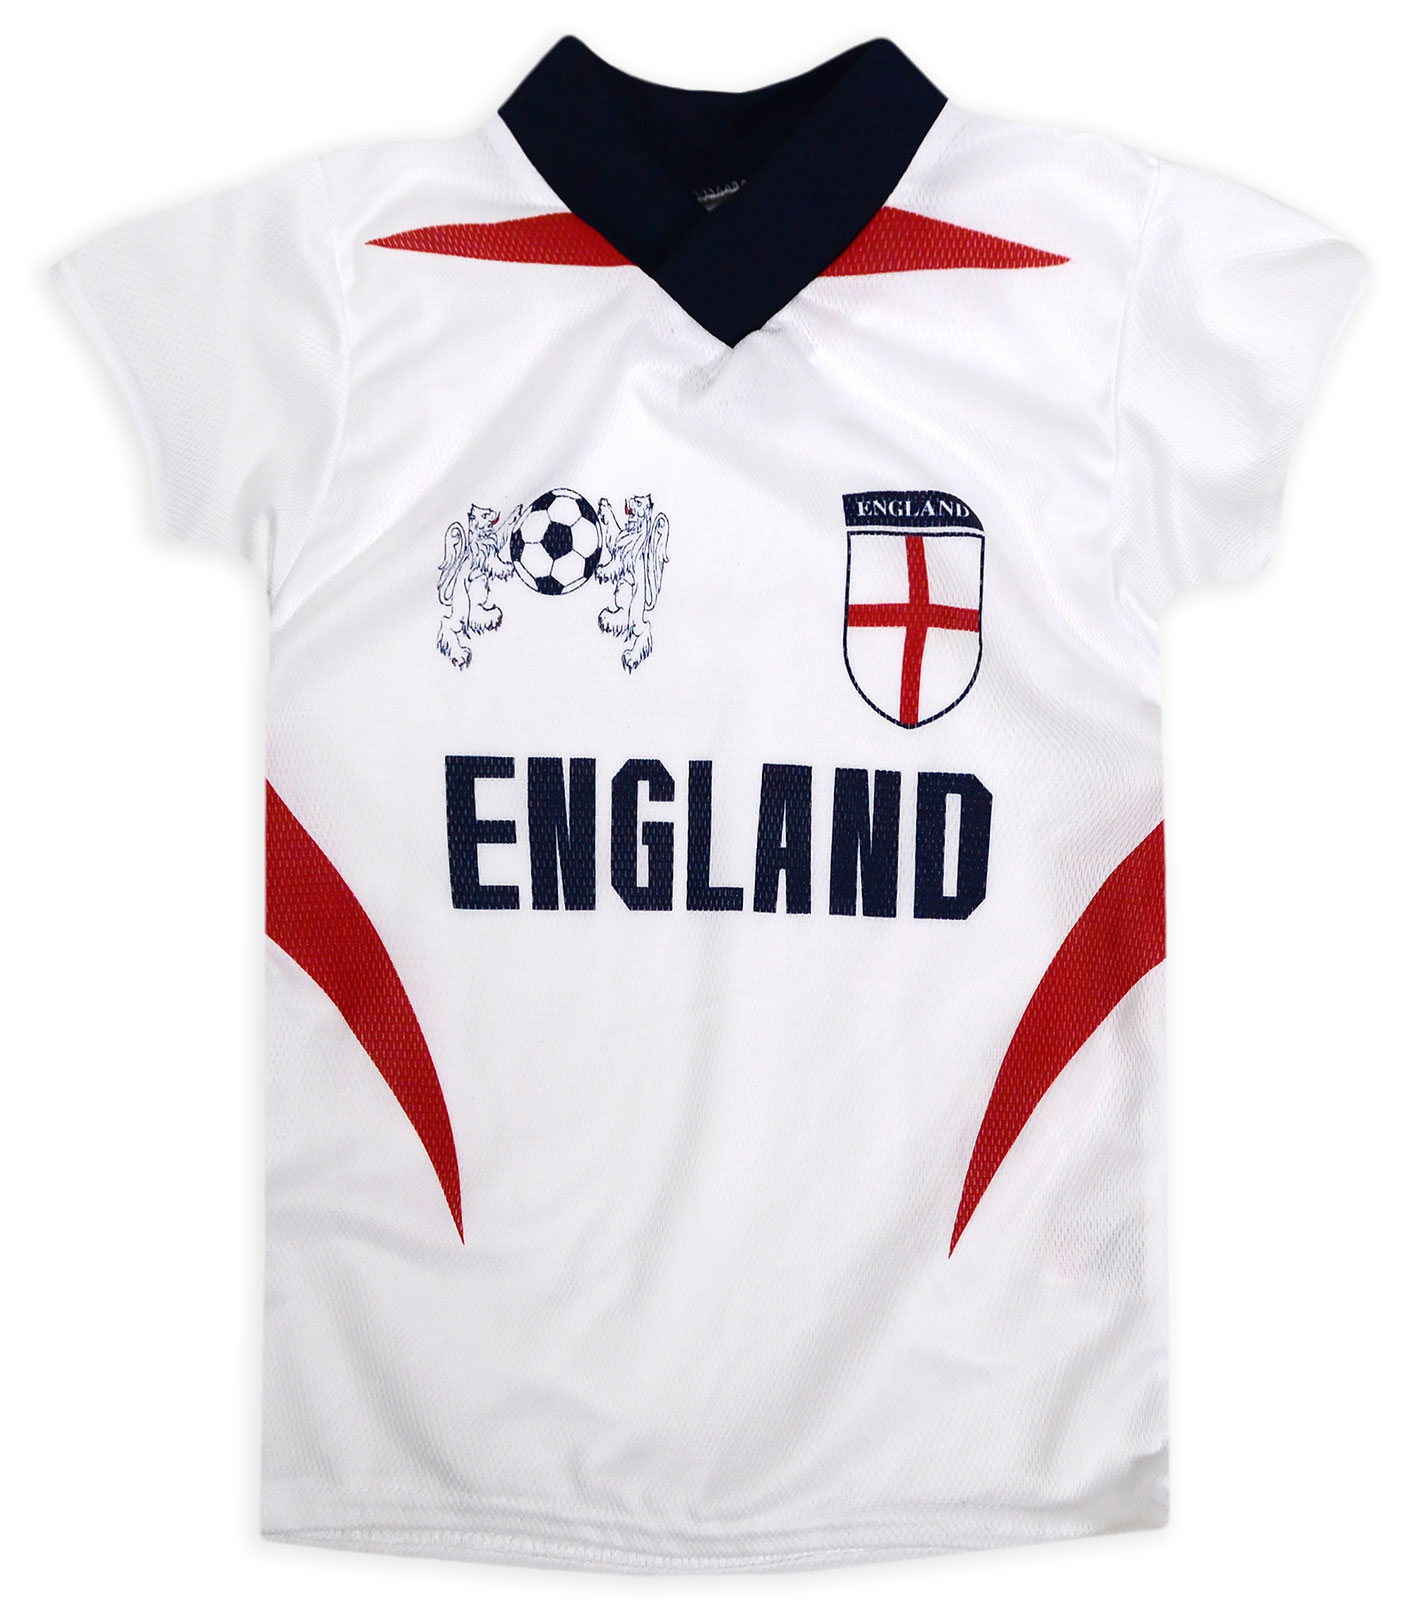 515af179 Details about Boys Short Sleeved England Logo T-Shirt New Kids Baby White  Football Tops Tee